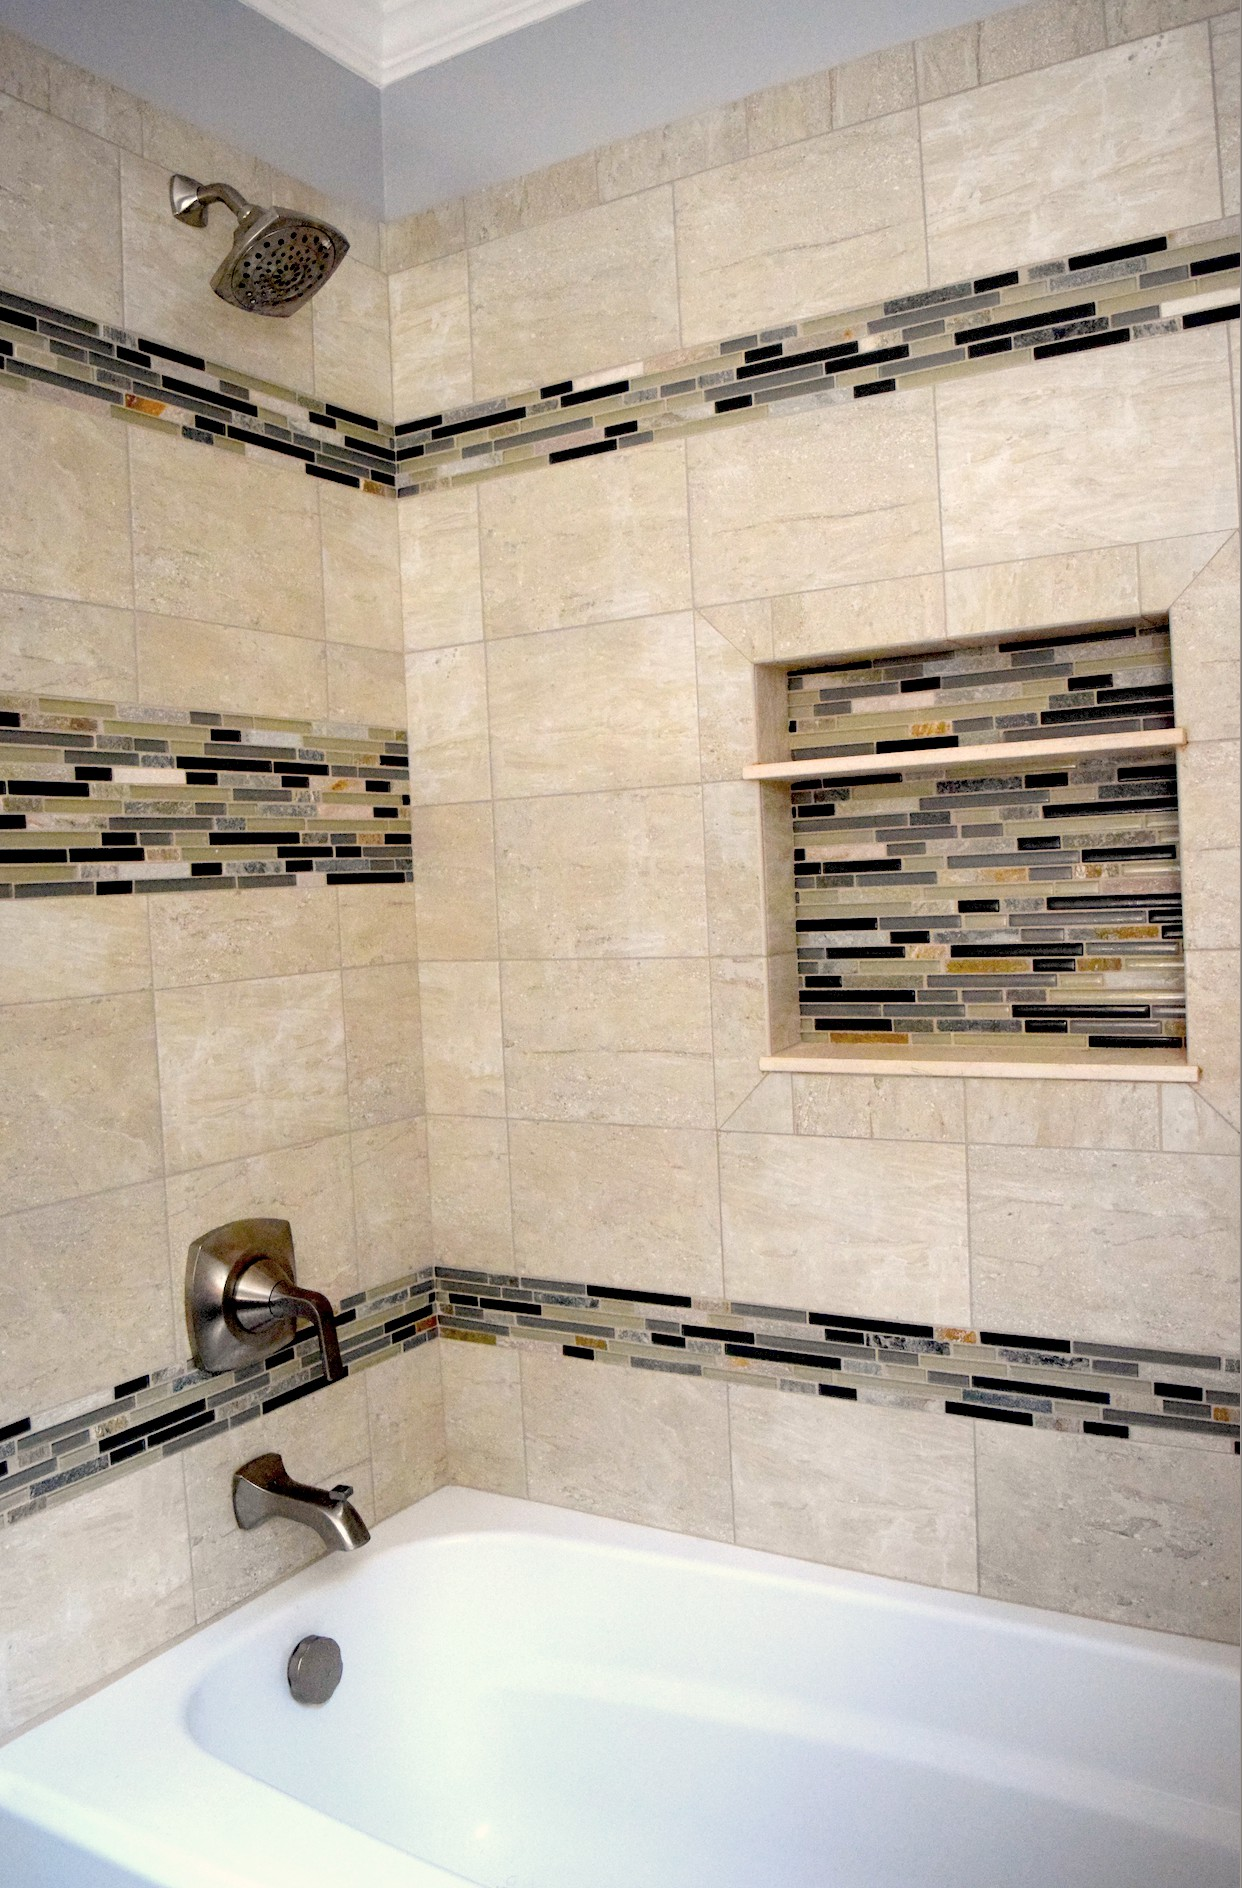 A bathroom remodel is one of the easiest and most common home improvement projects. Here are 5 tips when remodeling a bathroom! Full story @ www.hipmamasplace.com